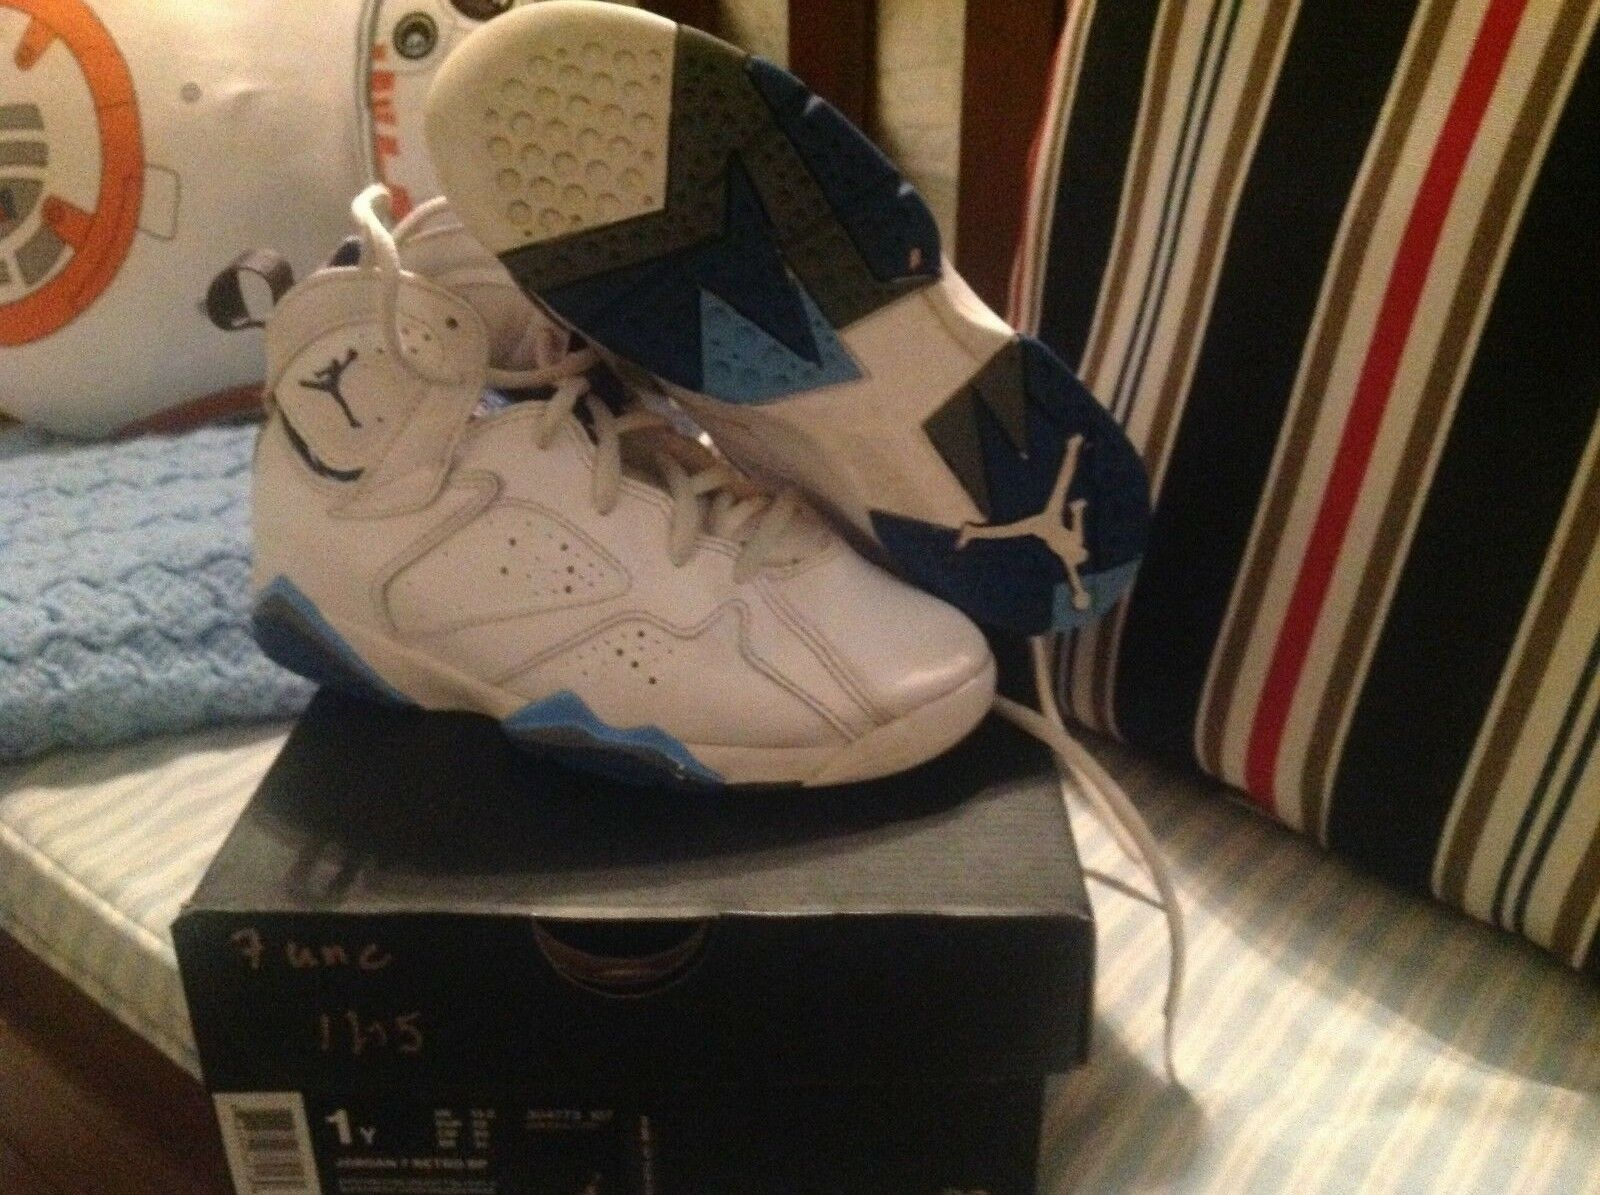 Air jordan 7 unc blue gray size 1 Cheap women's shoes women's shoes